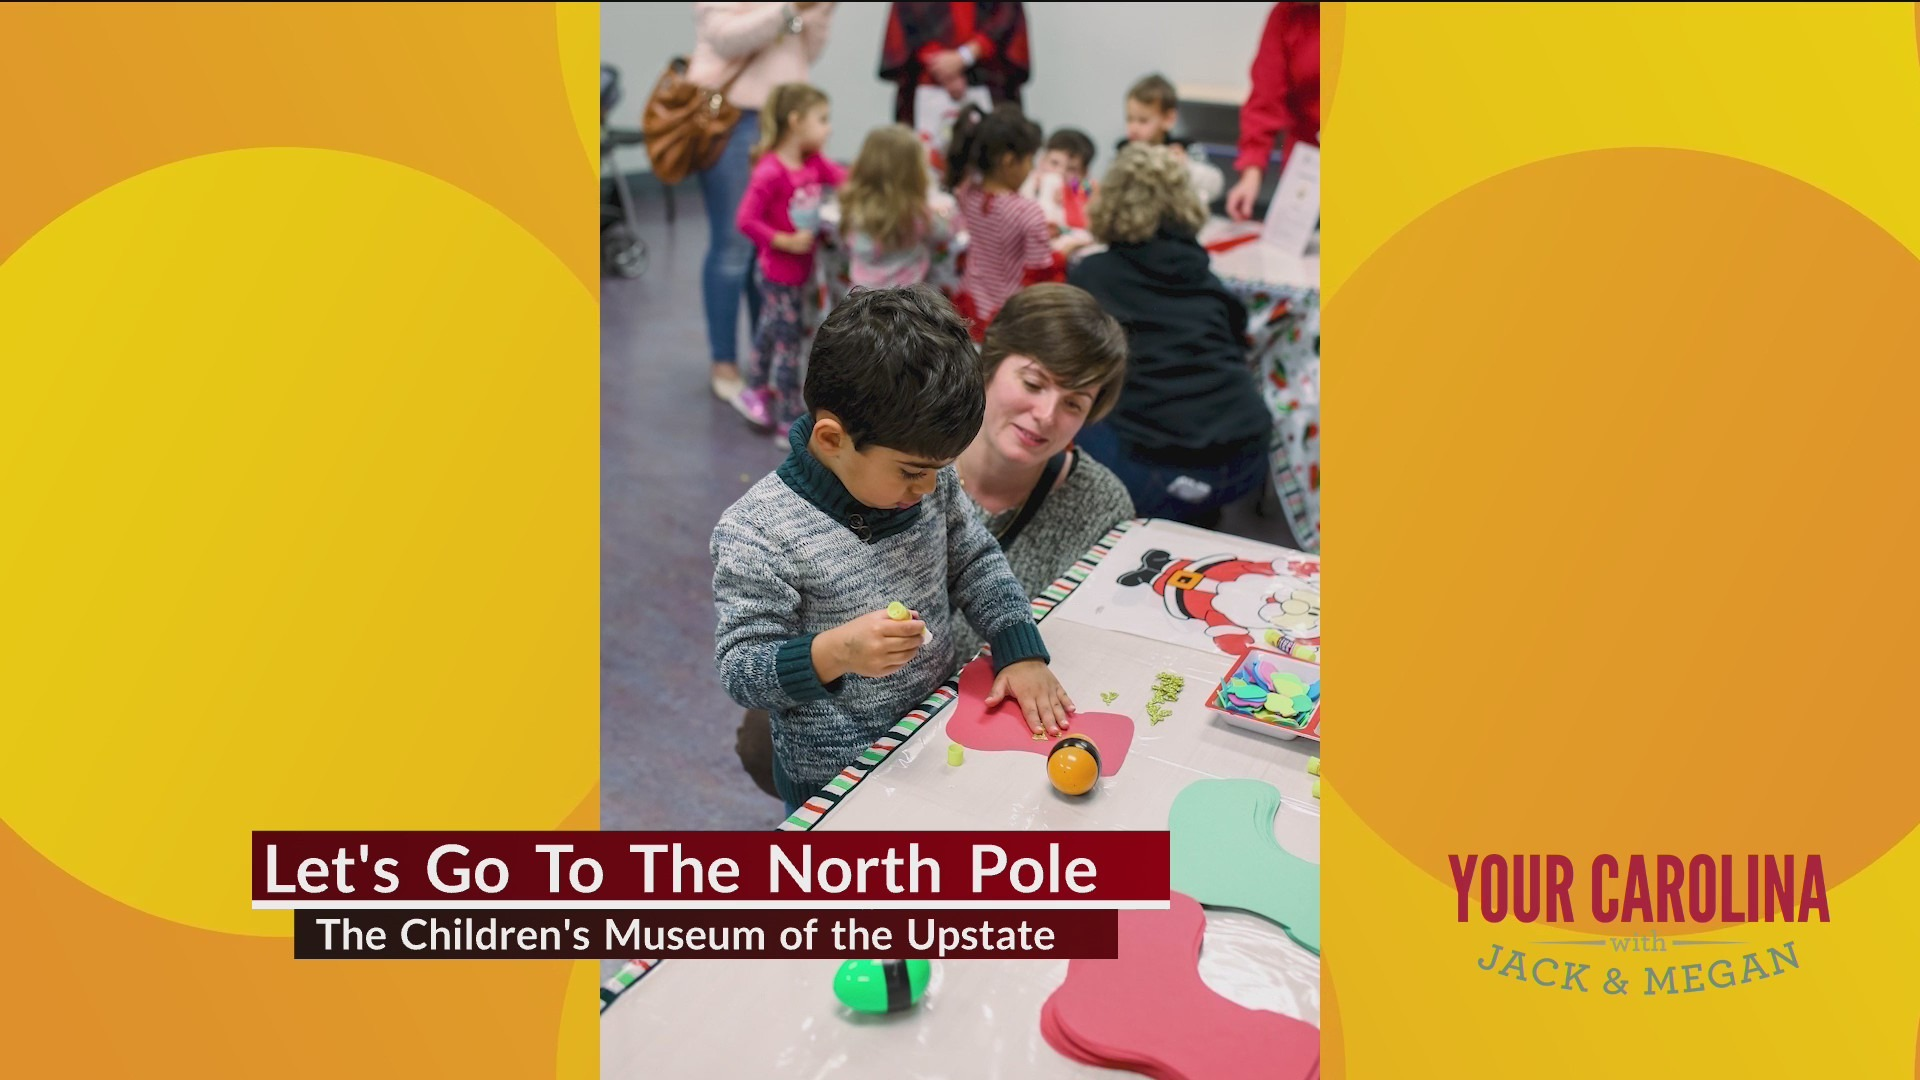 Let's Go To The North Pole